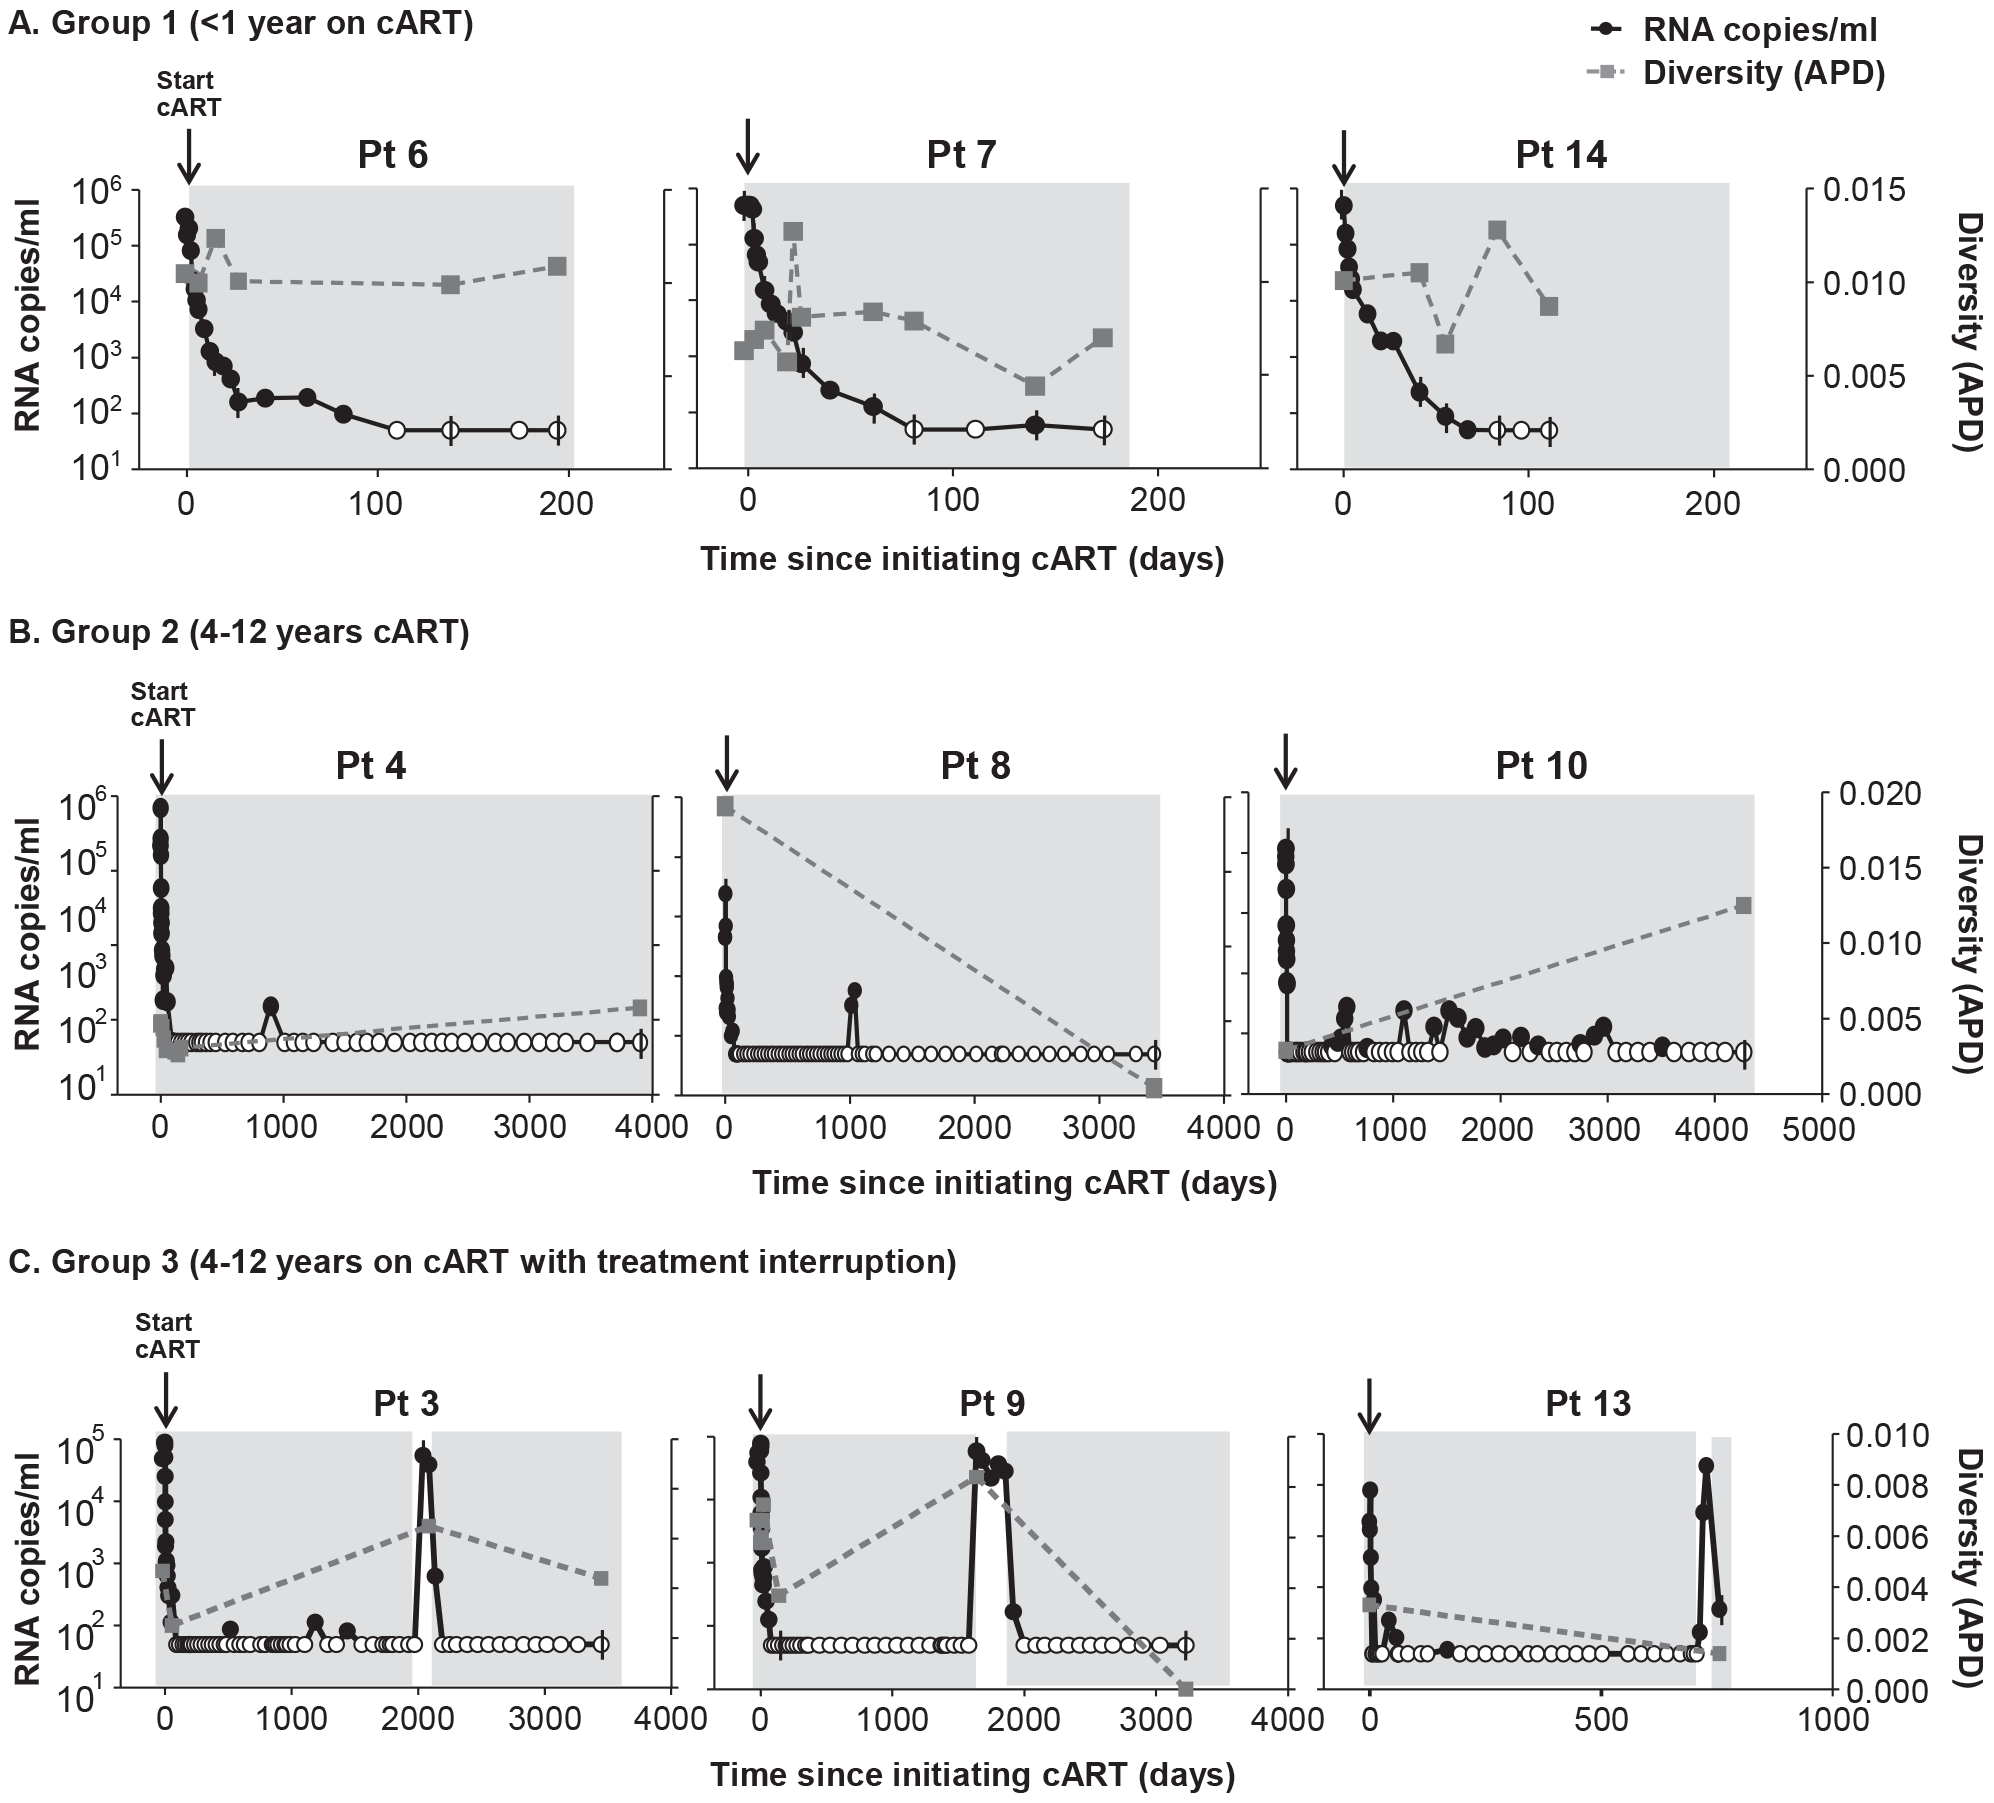 HIV-1 plasma RNA copy numbers and diversity as calculated by APD in longitudinal samples prior to and during cART in selected patients on (A) short-term cART (Group 1) (B) long-term cART (Group 2) and (C) cART with treatment interruptions (Group 3).